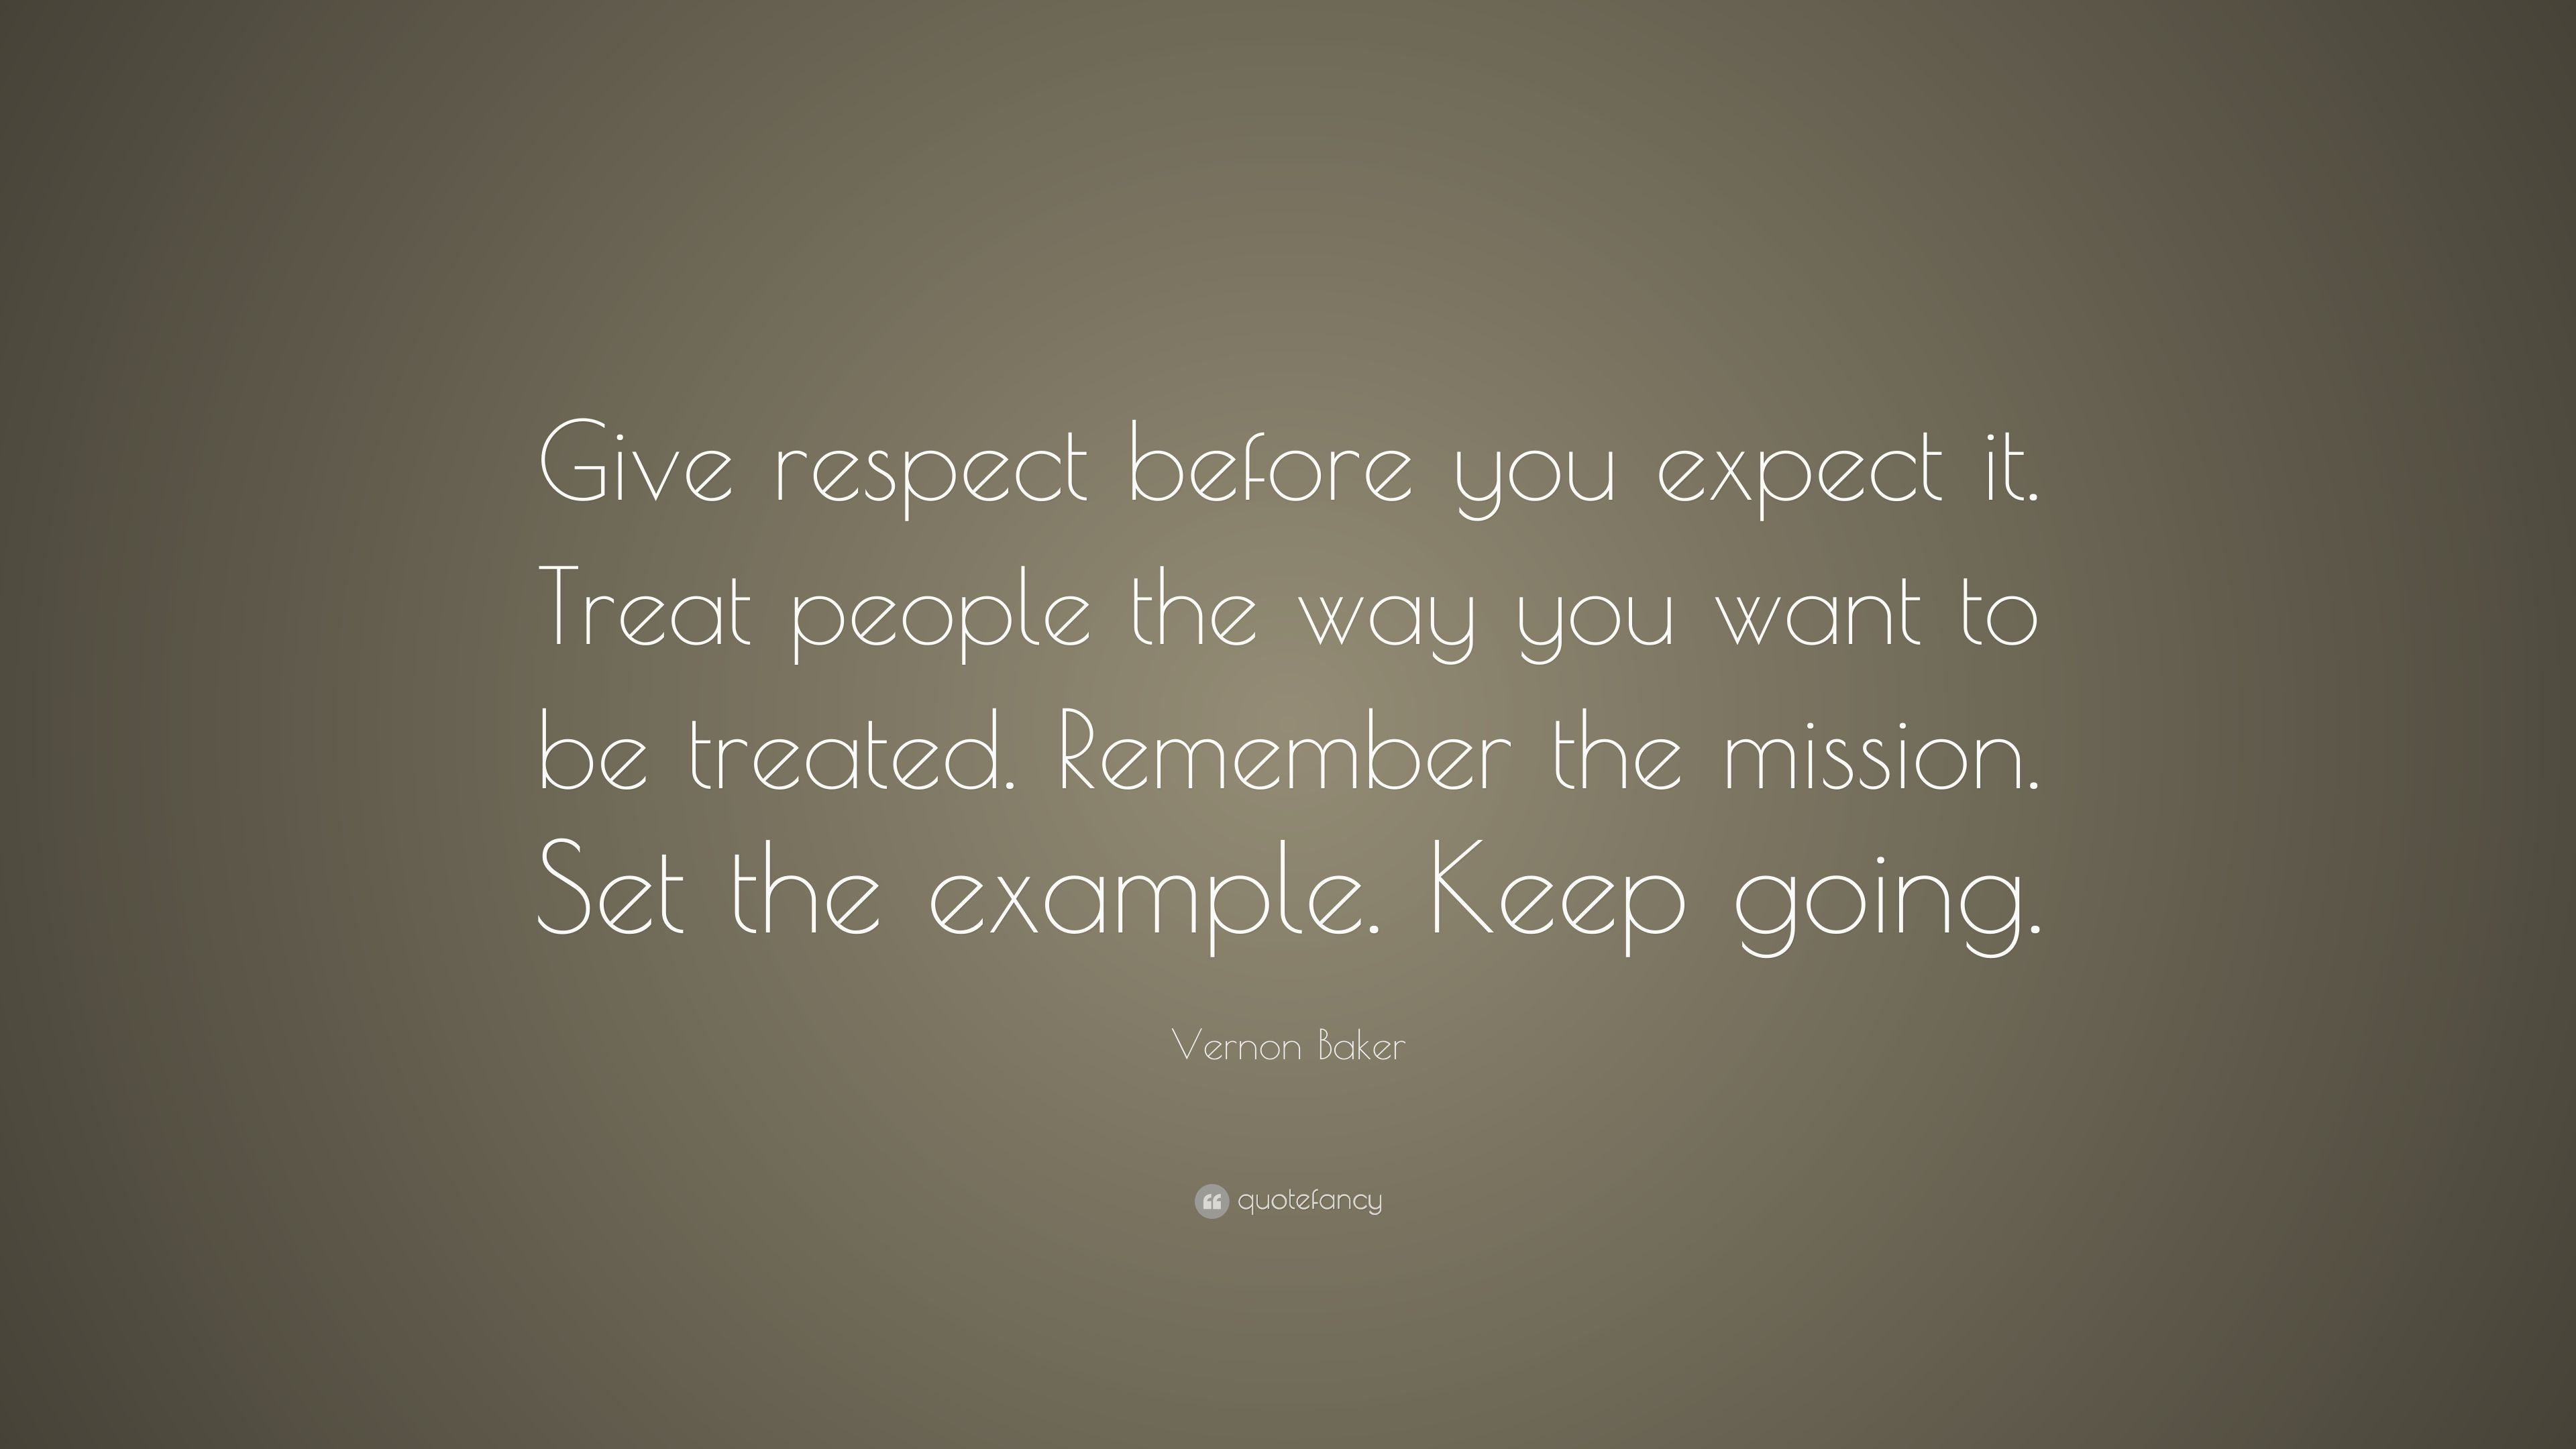 """Quotes By Vernon Baker: Vernon Baker Quote: """"Give Respect Before You Expect It"""